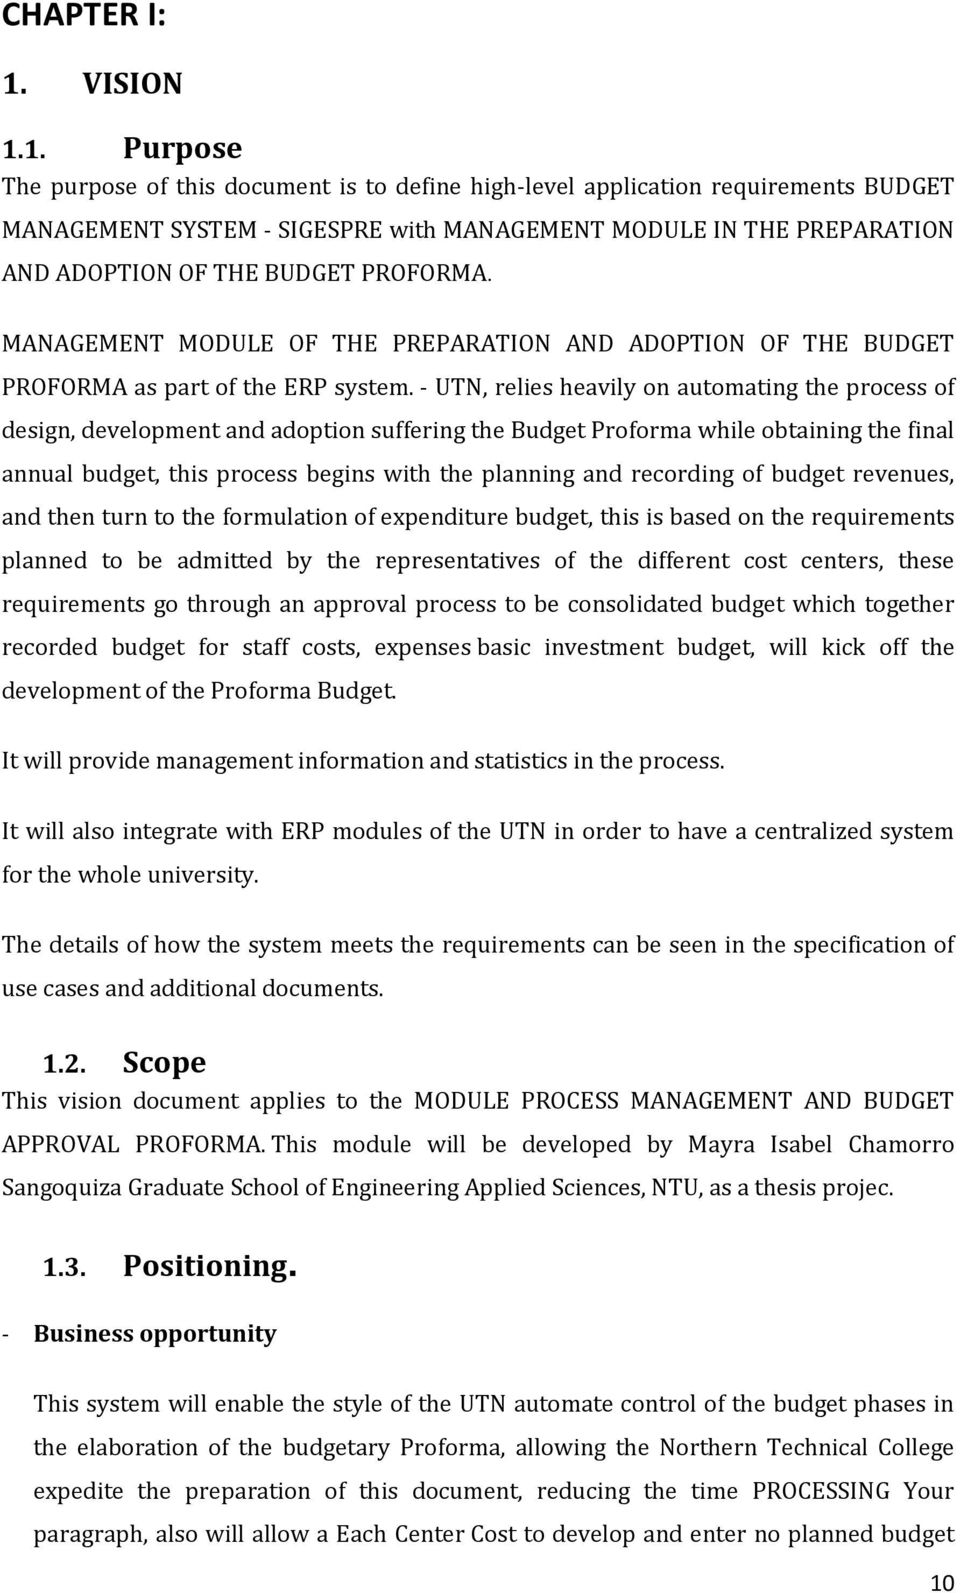 1. Purpose The purpose of this document is to define high-level application requirements BUDGET MANAGEMENT SYSTEM - SIGESPRE with MANAGEMENT MODULE IN THE PREPARATION AND ADOPTION OF THE BUDGET